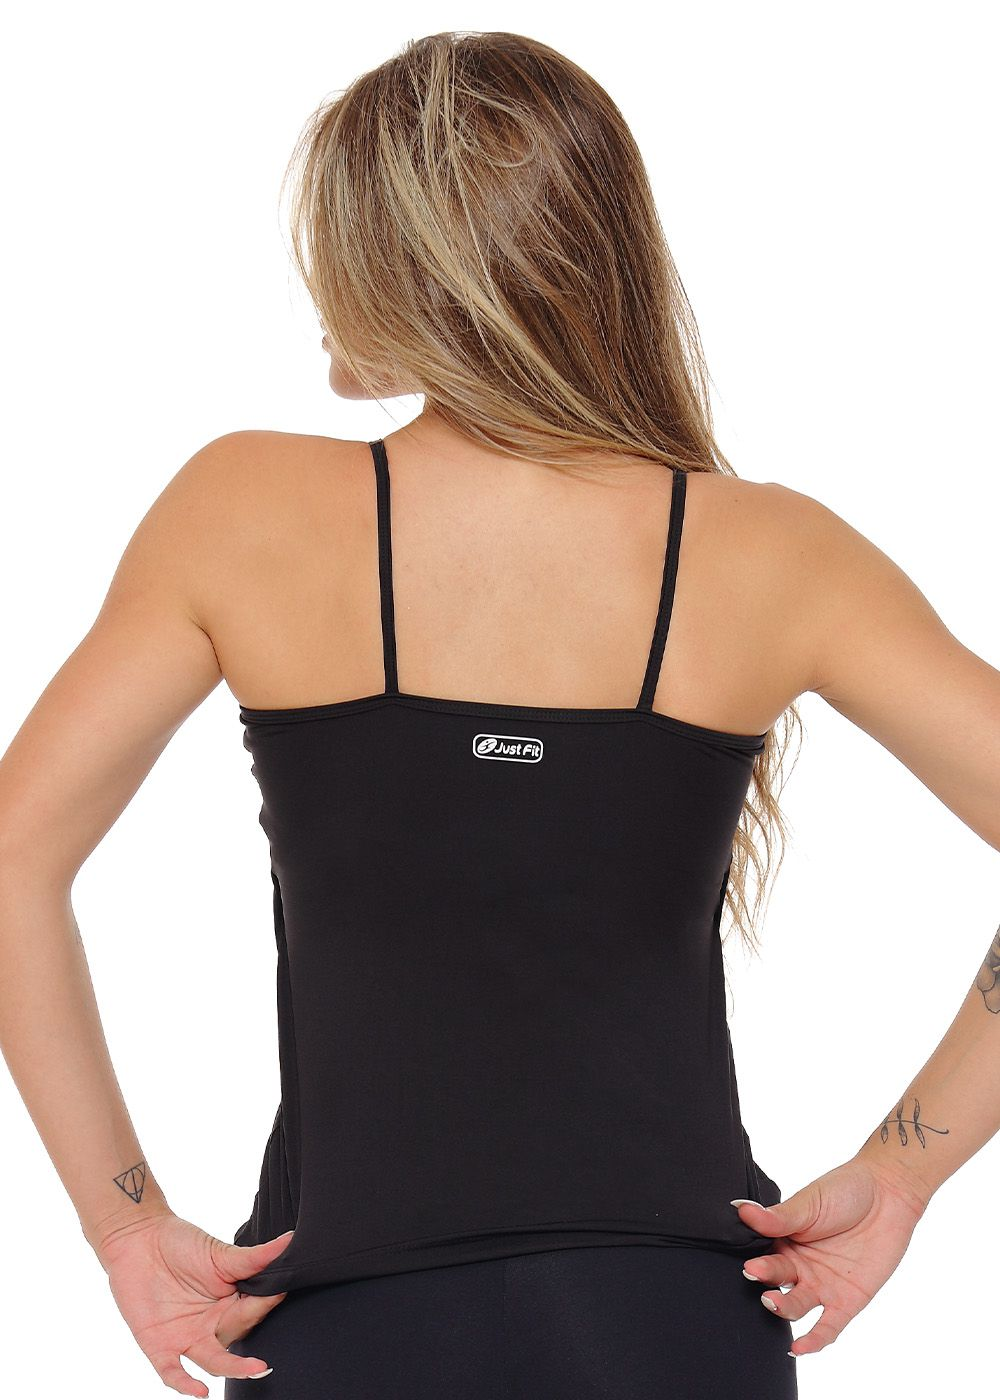 REGATA ALCINHA SUPLEX FEMININA JUST FIT - PRETO